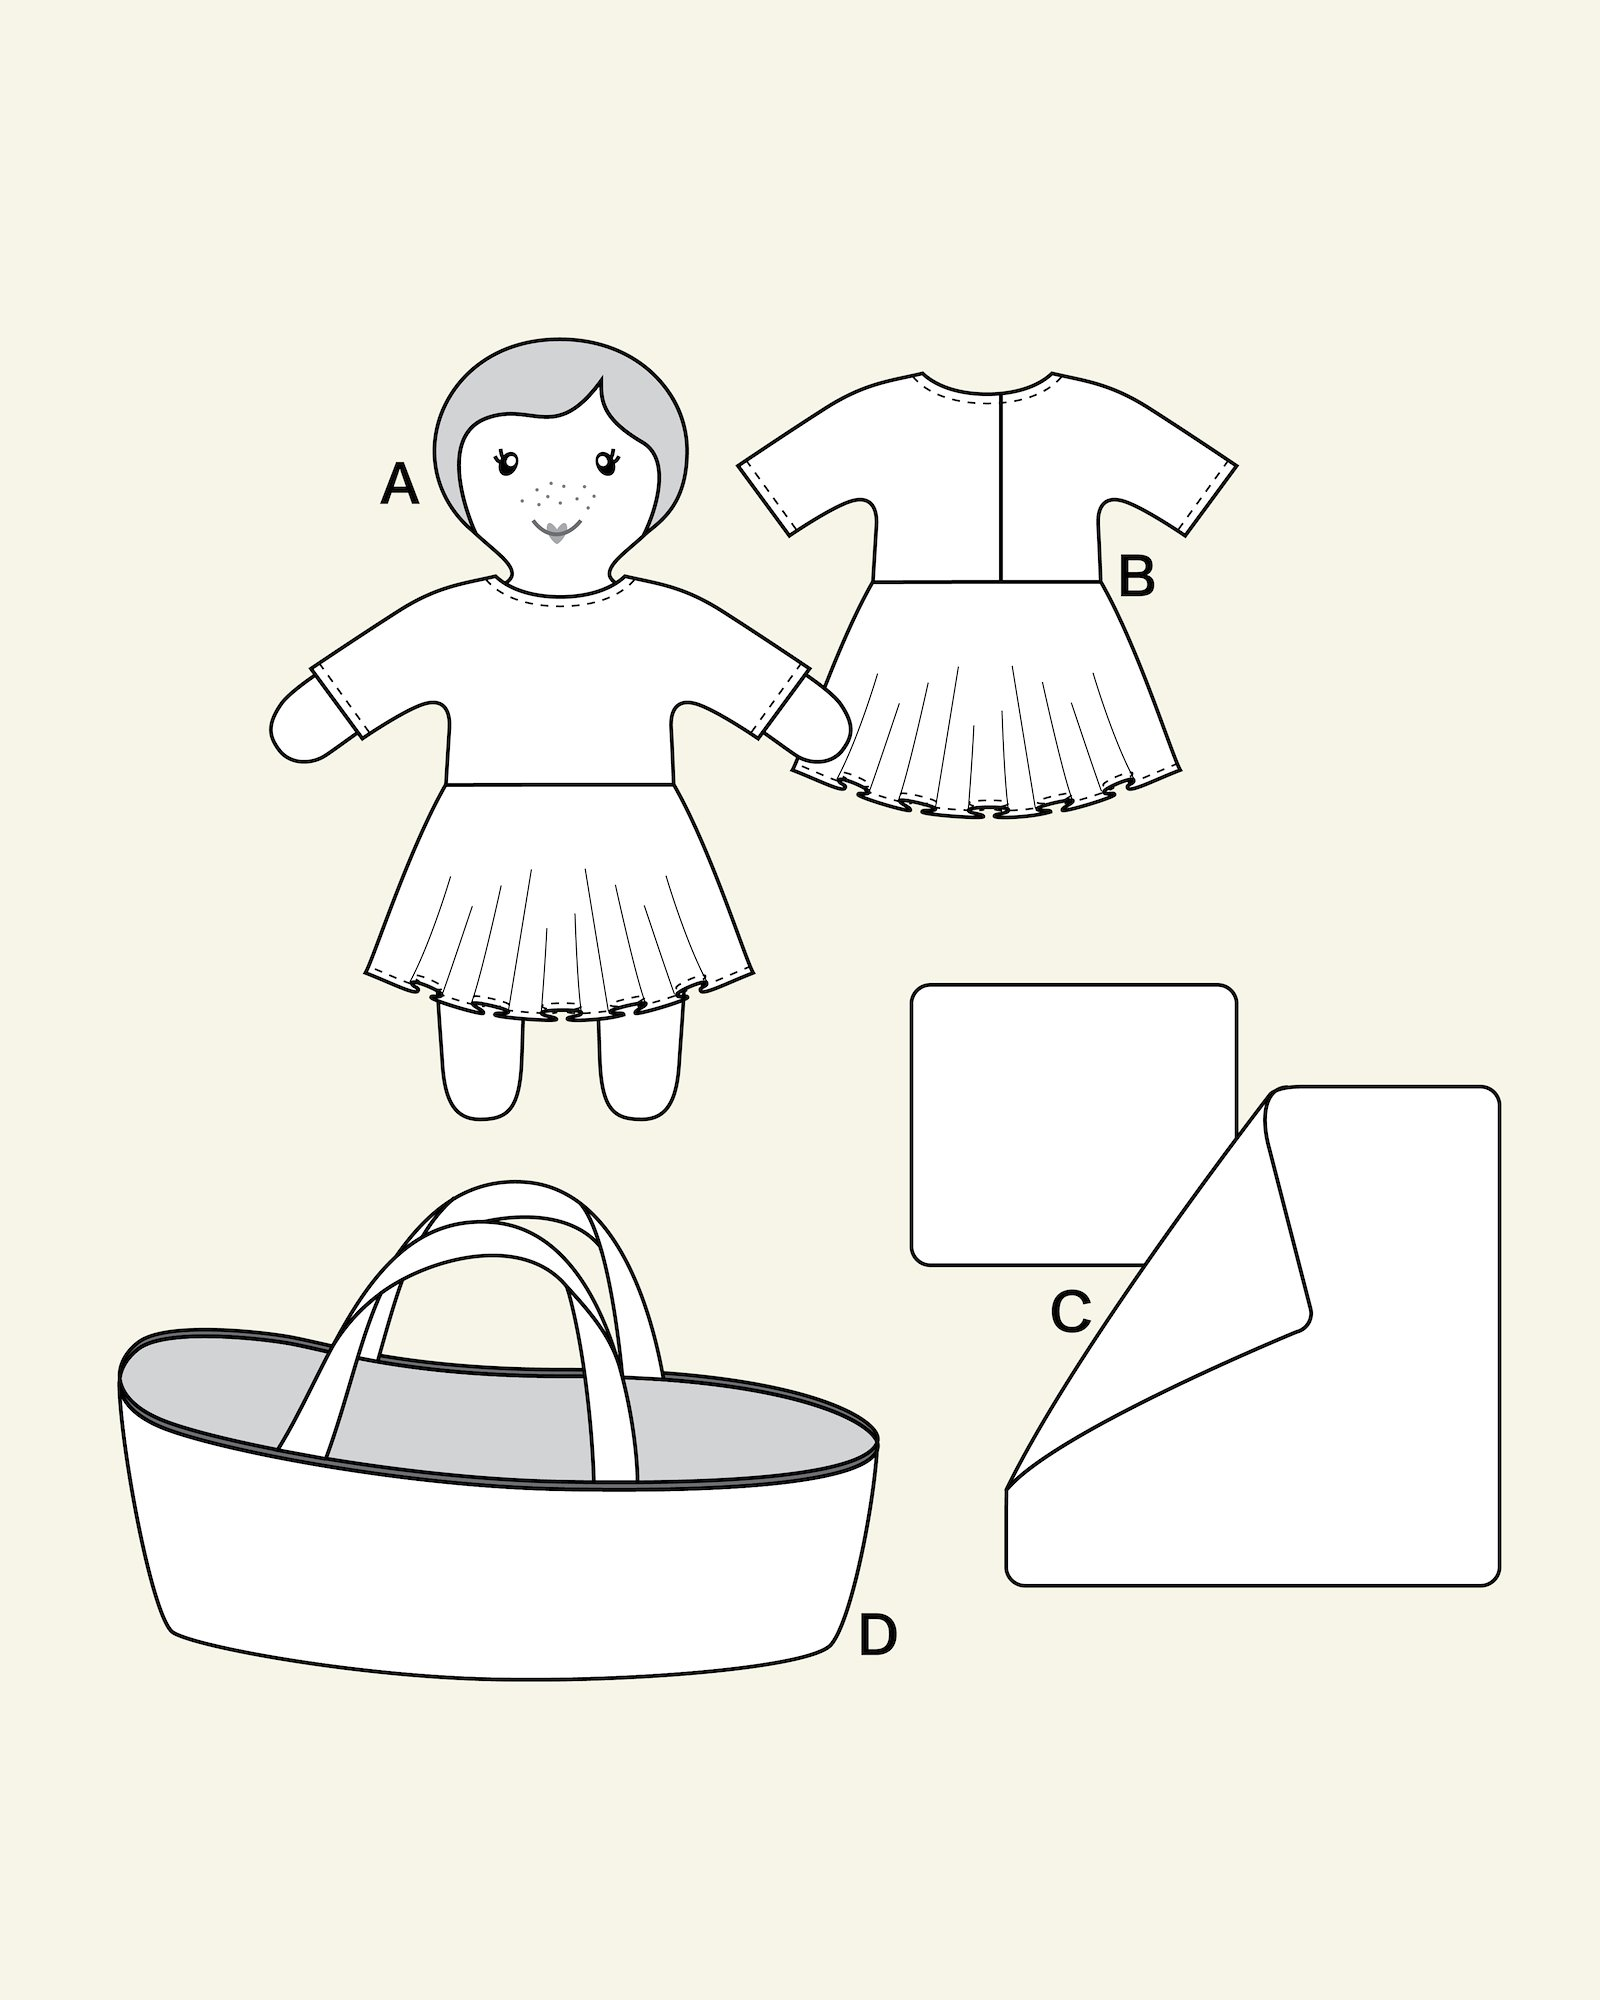 Mini doll with clothes and carrycot